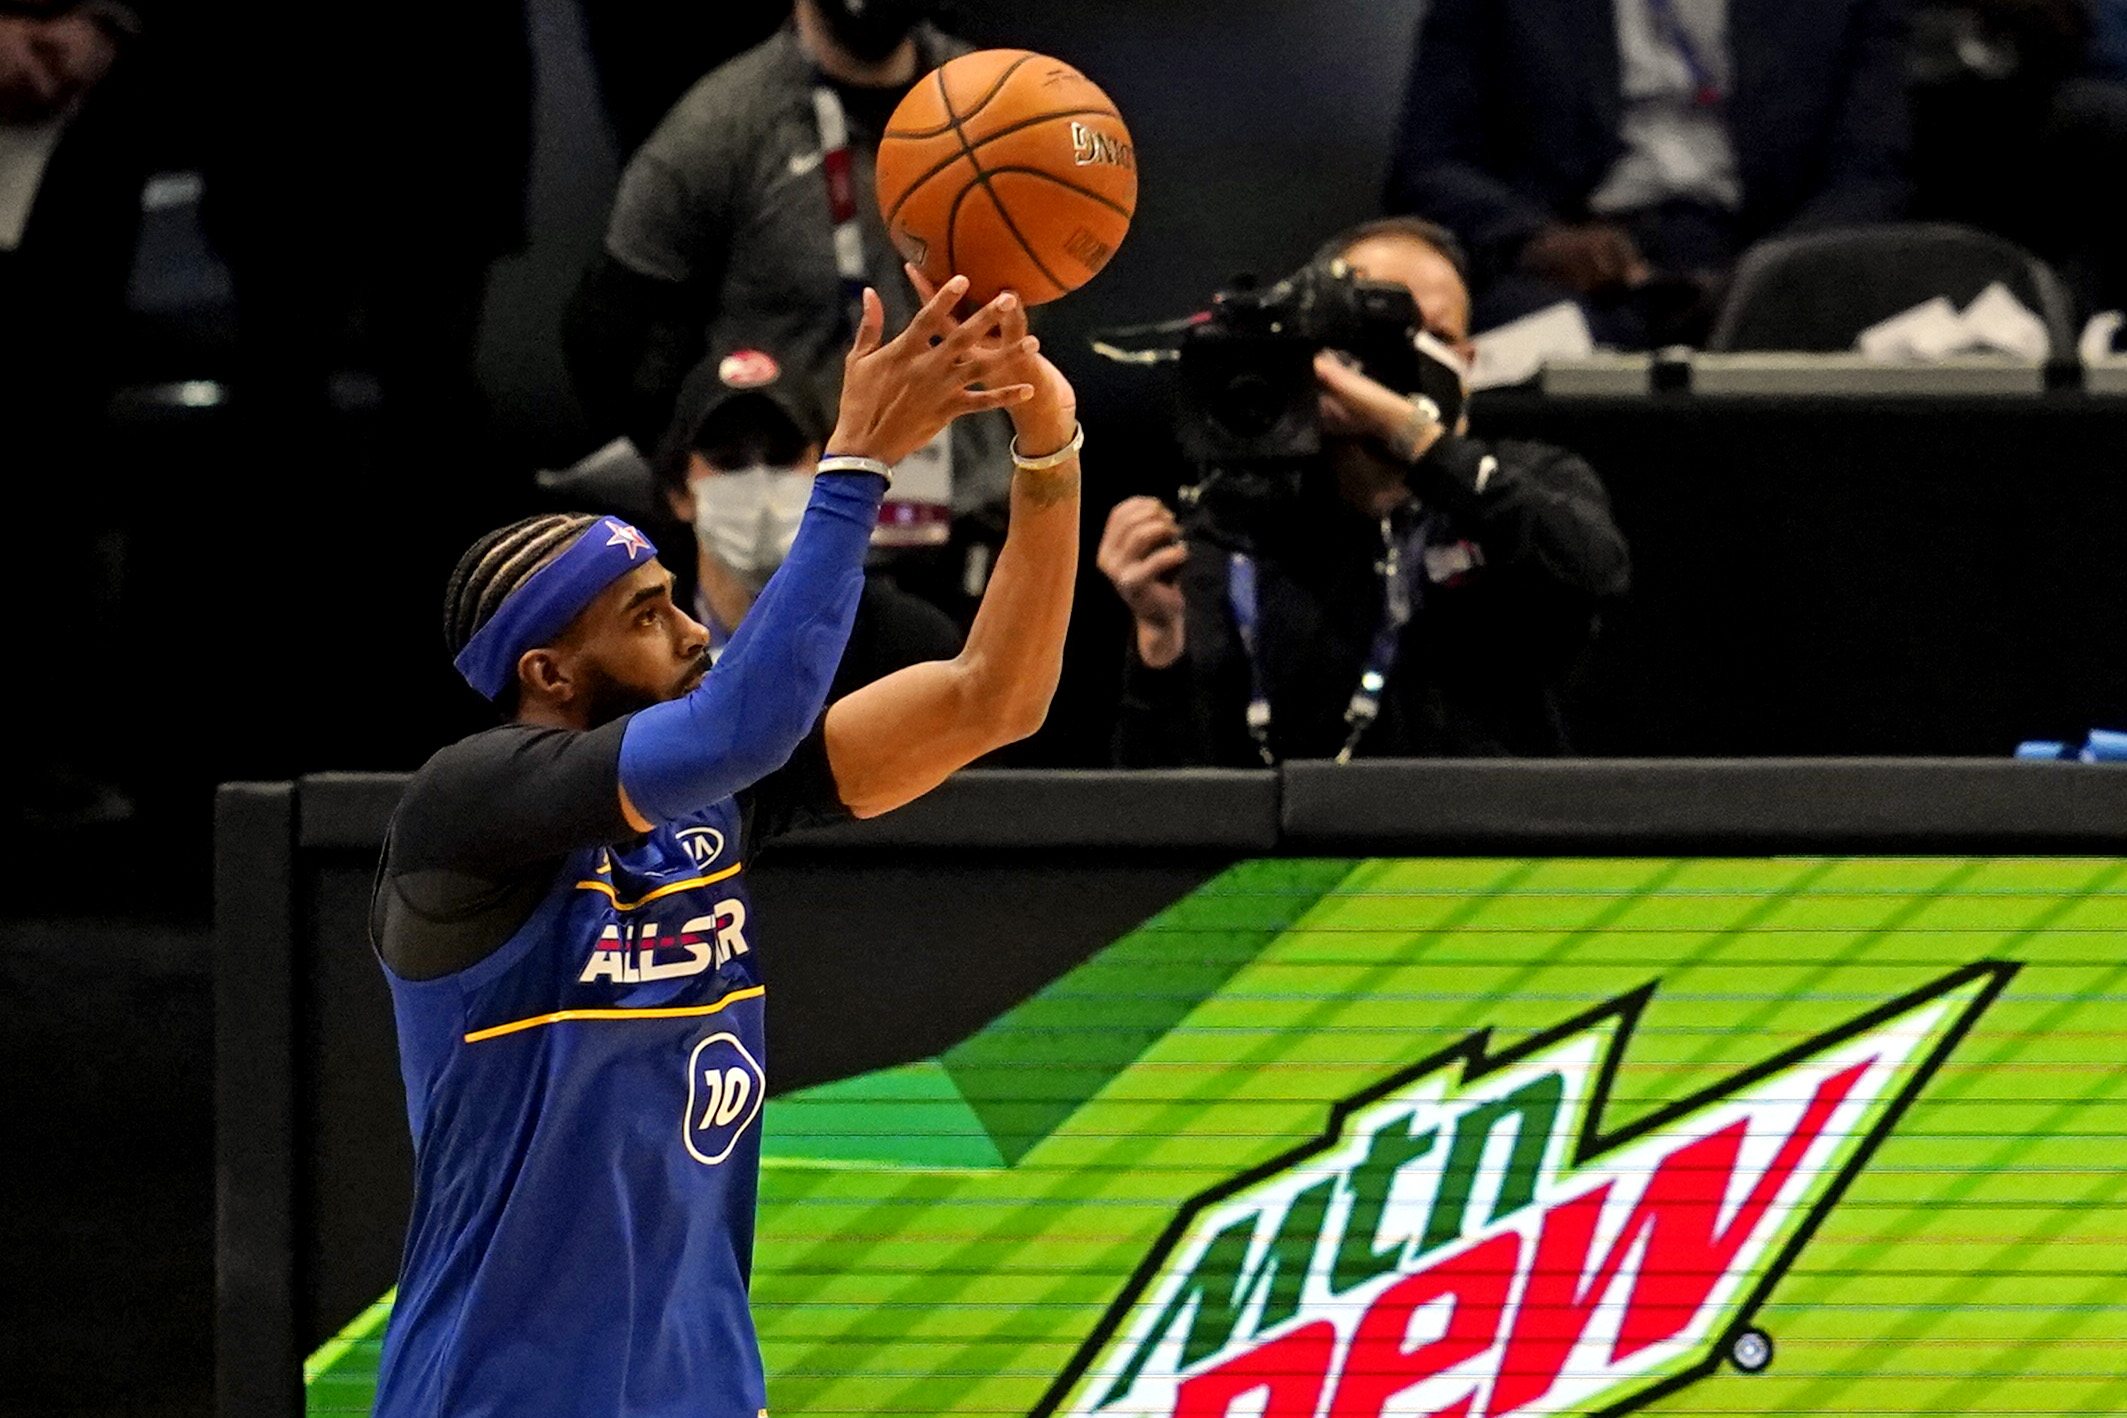 NBA: All Star Game-3 Point Contest